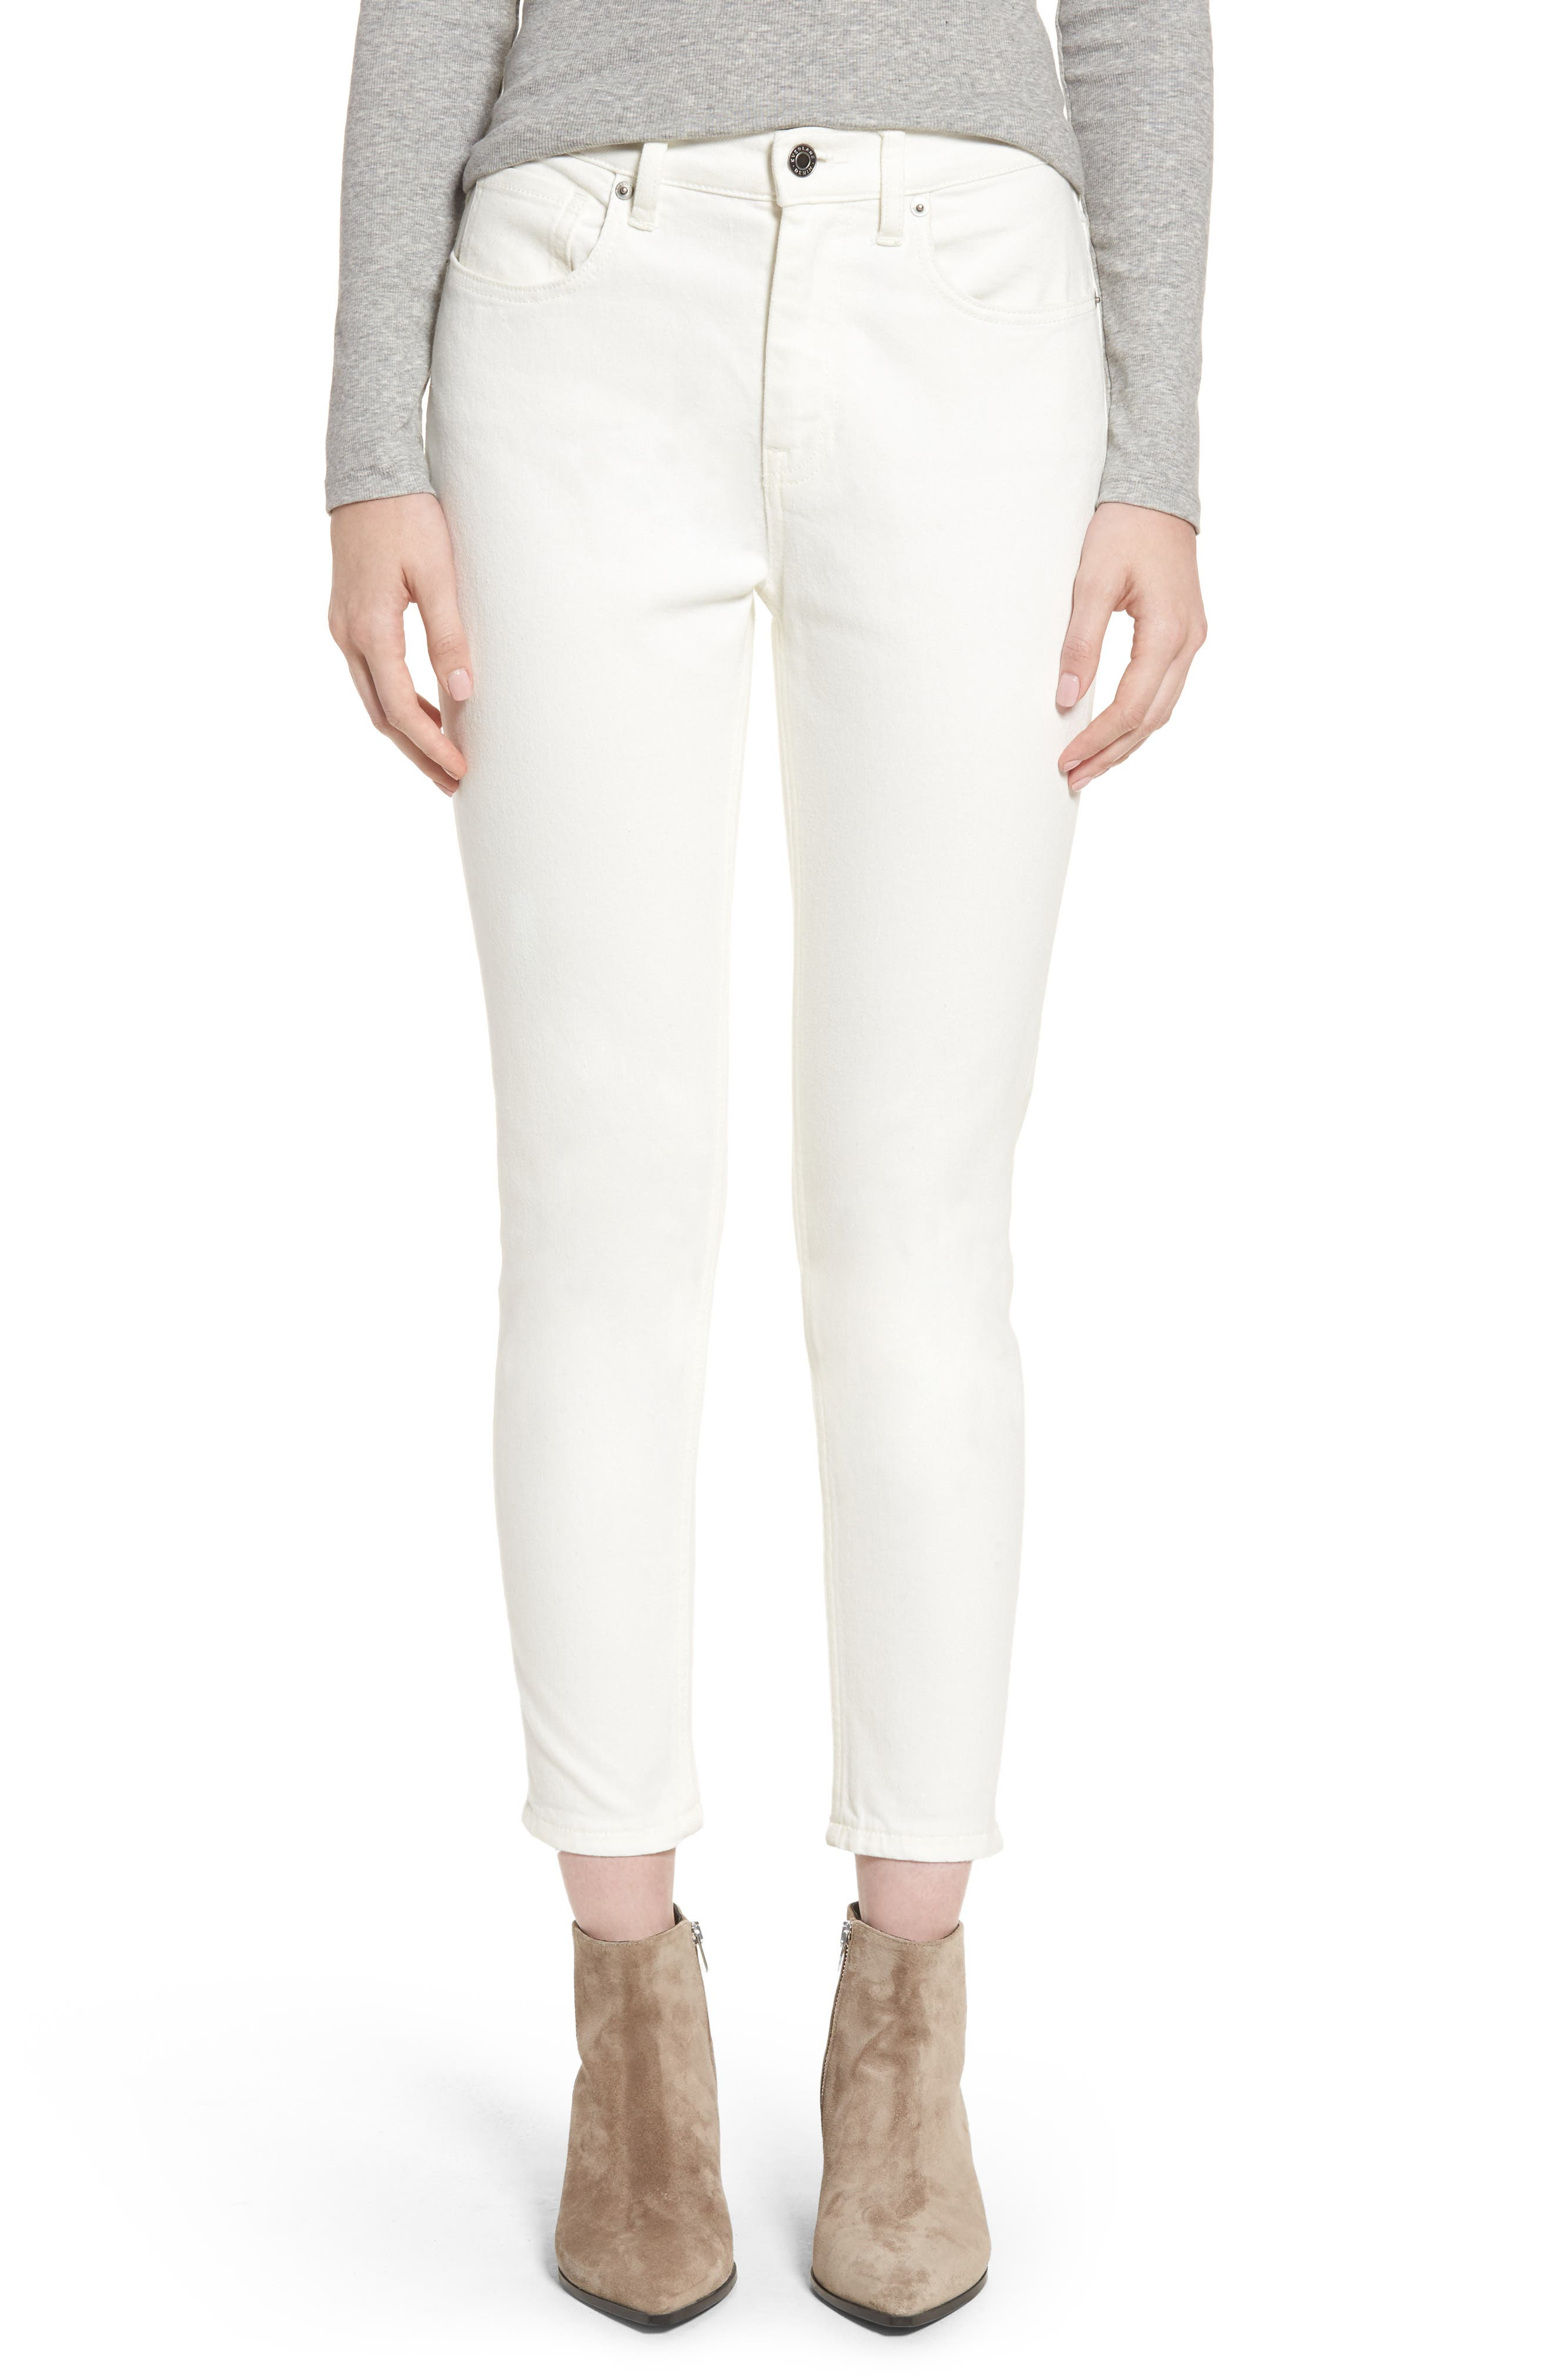 Everlane The High Rise Skinny Ankle Jeans